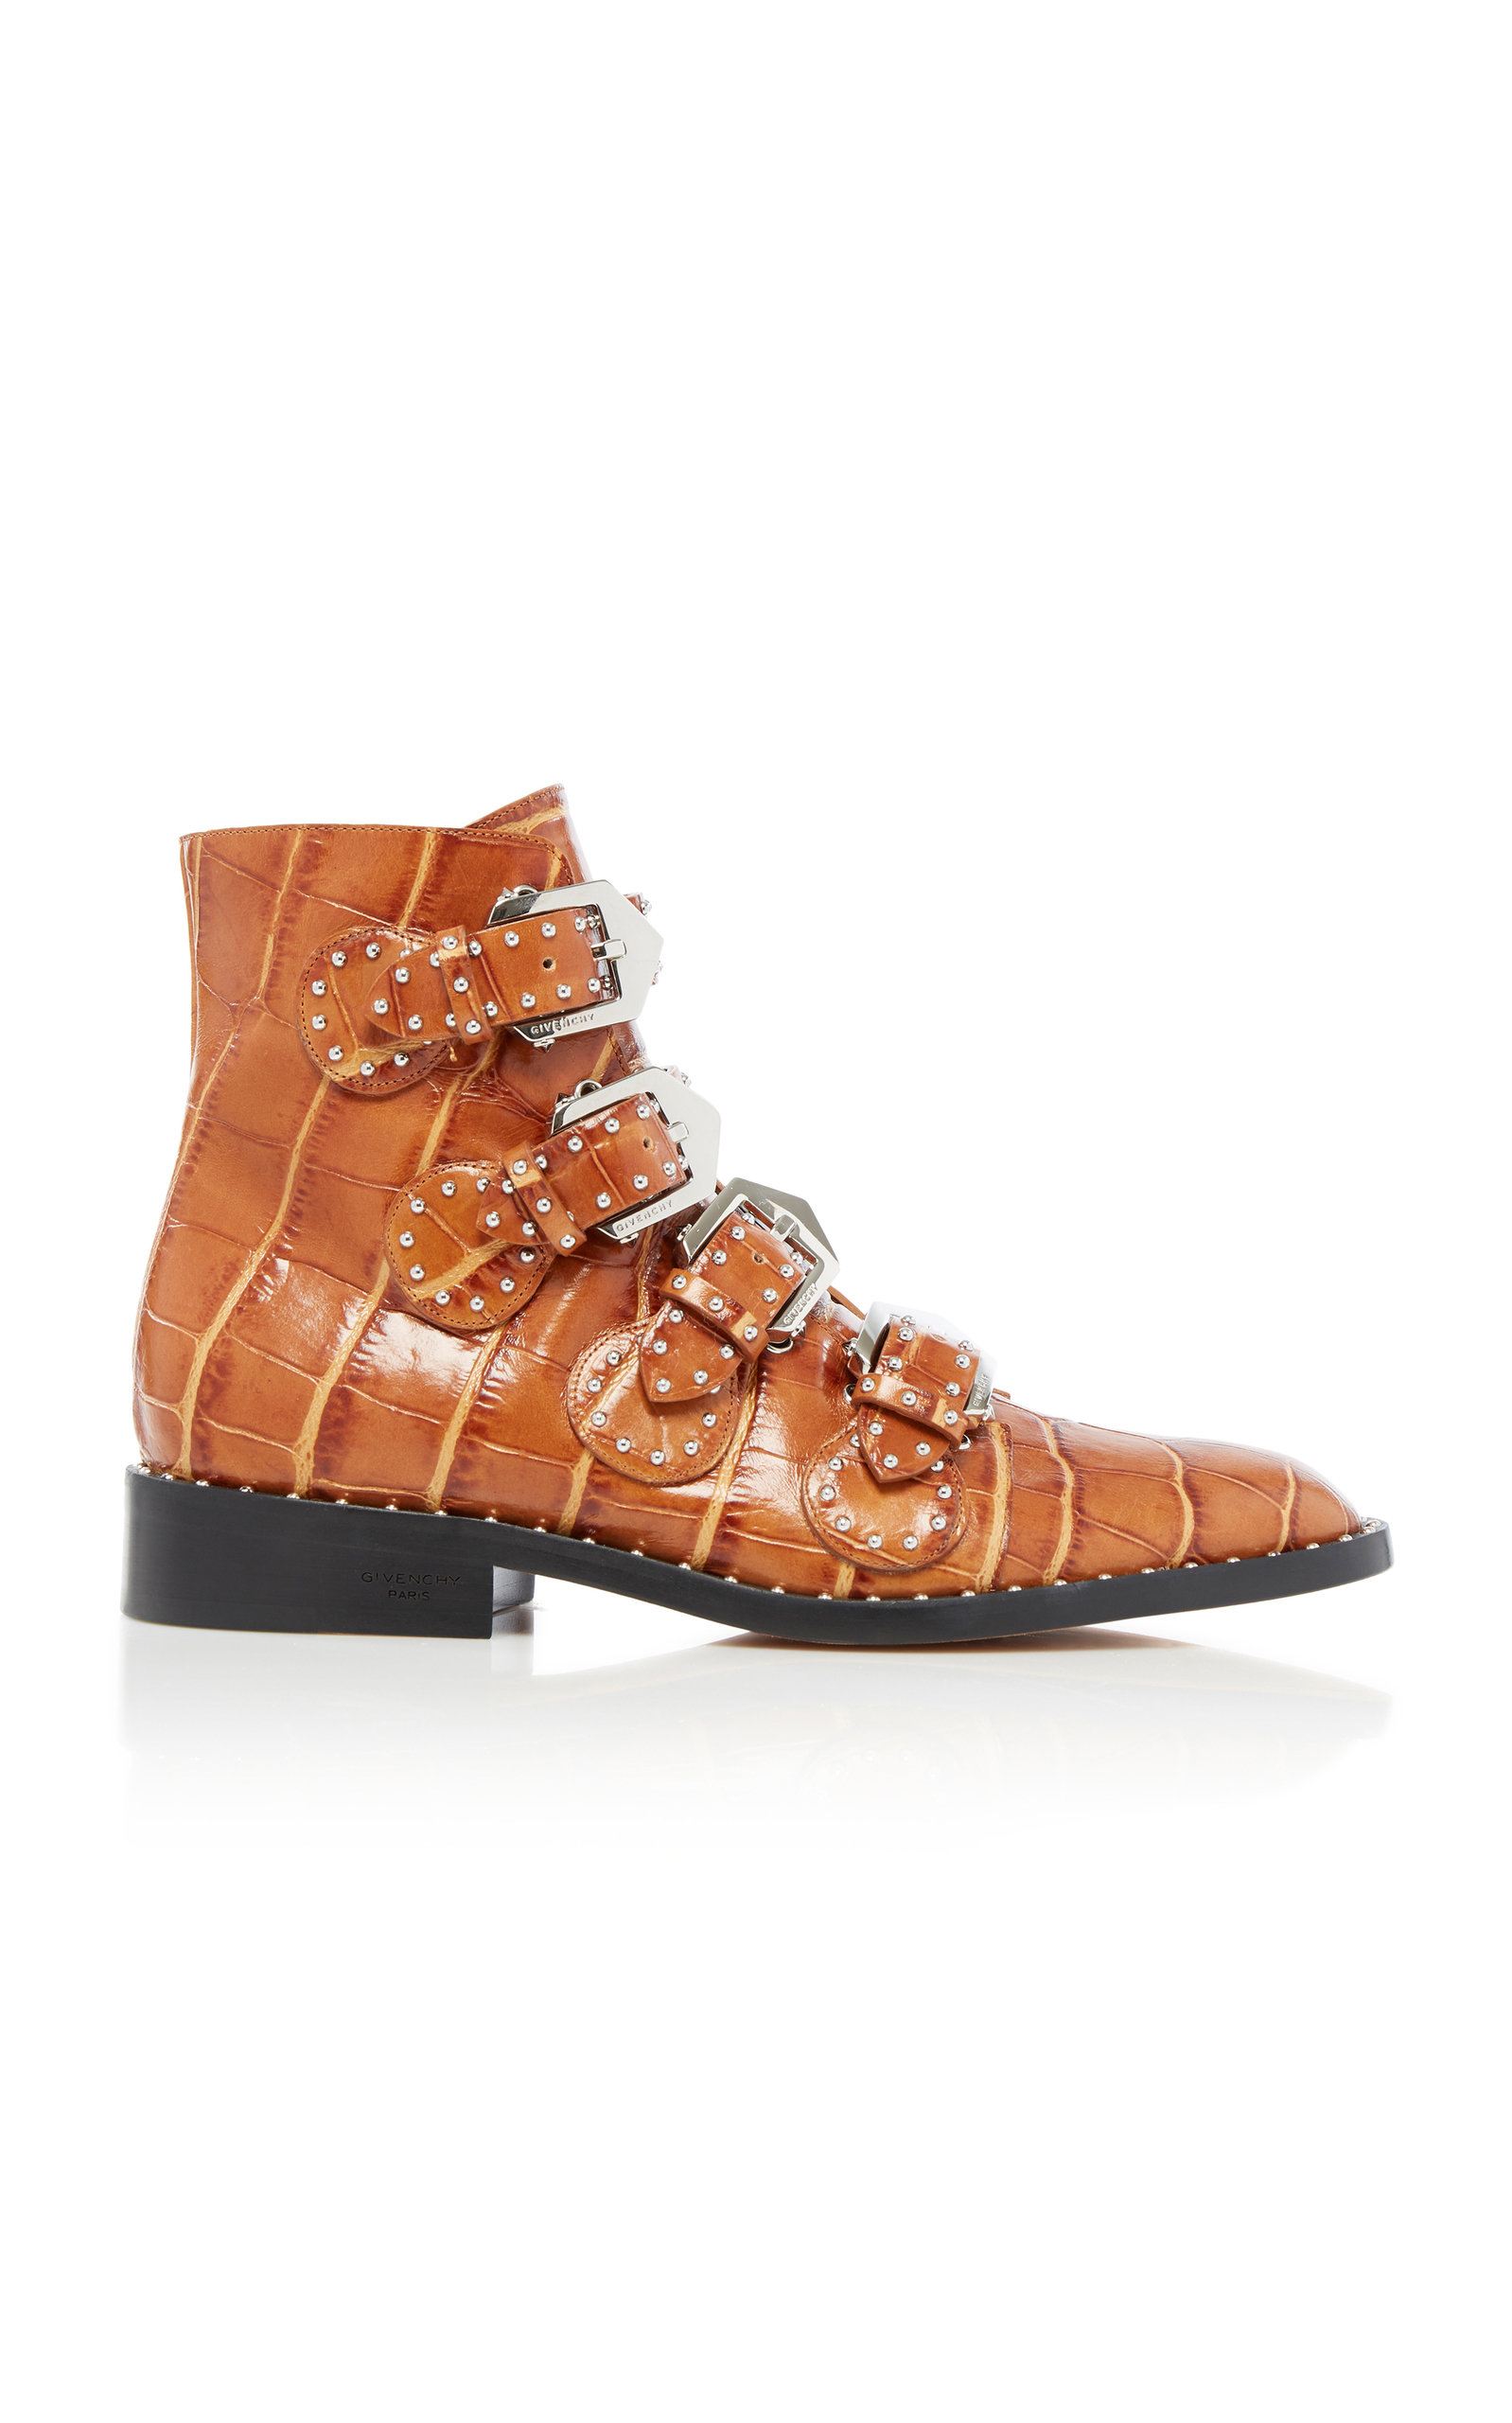 Givenchy Boots Studded Croc-Effect Leather Ankle Boots